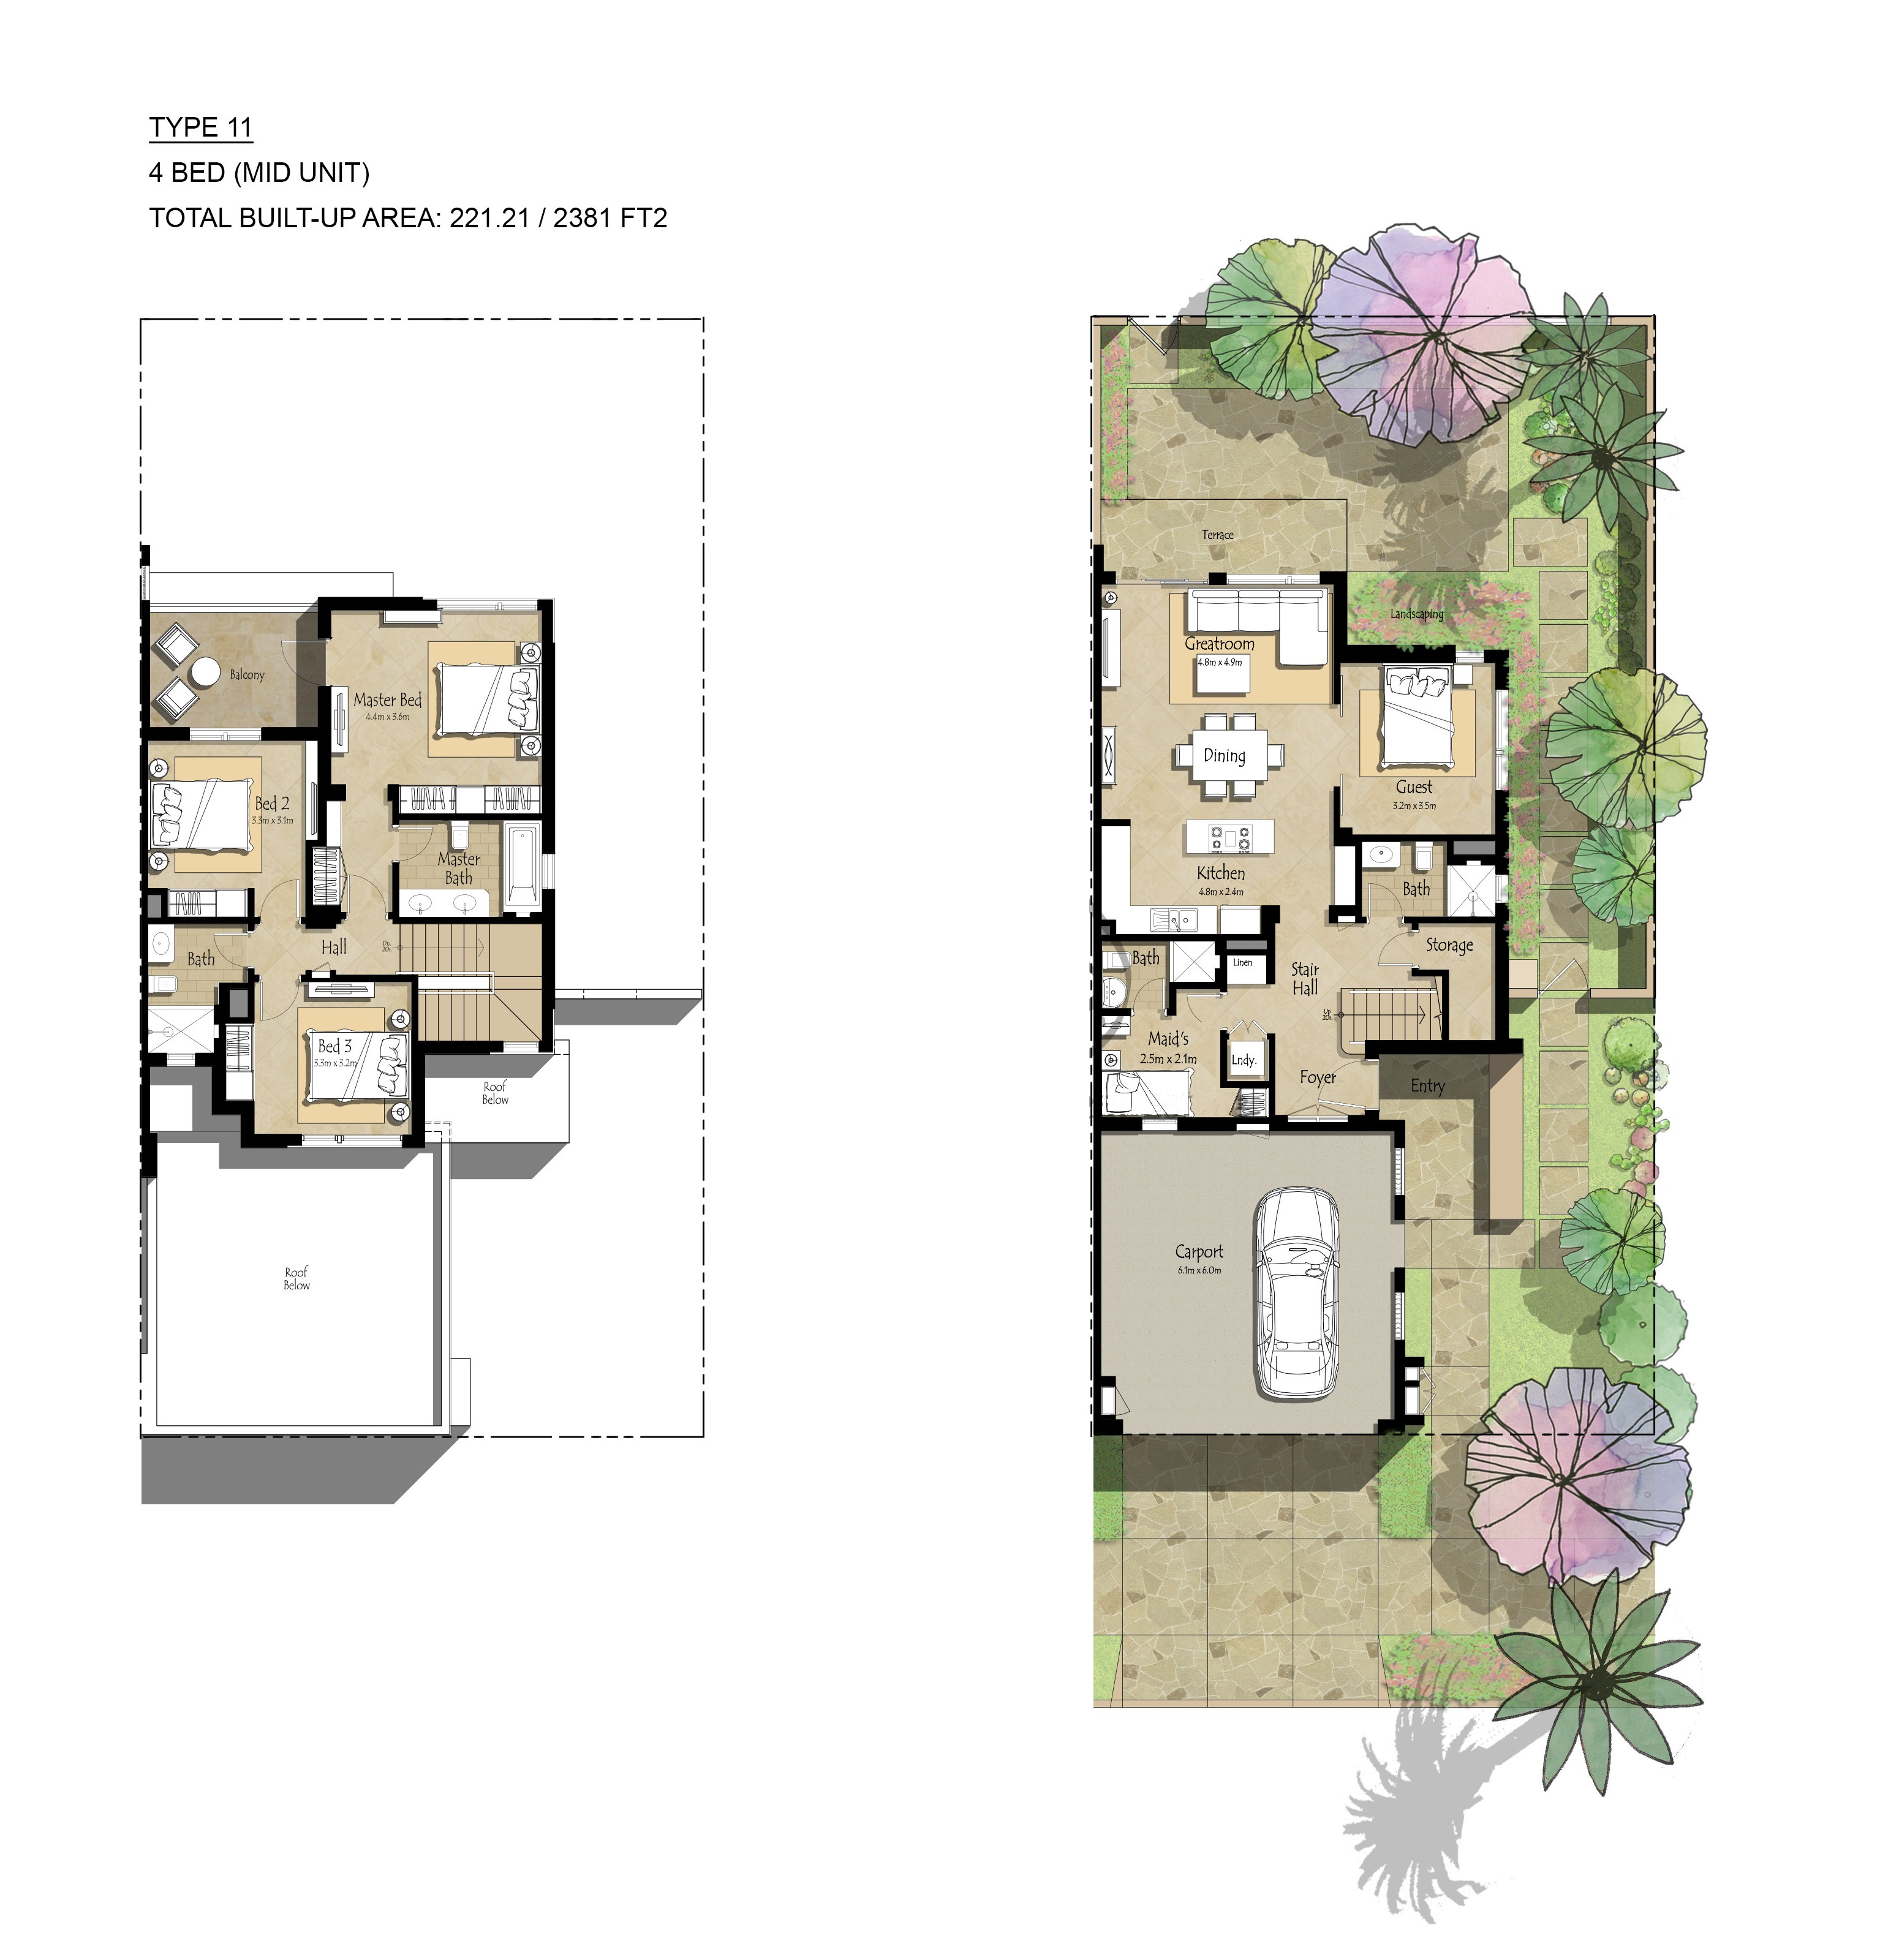 Safi townhouse floor plans town square dubai for 4 bedroom townhouse floor plans